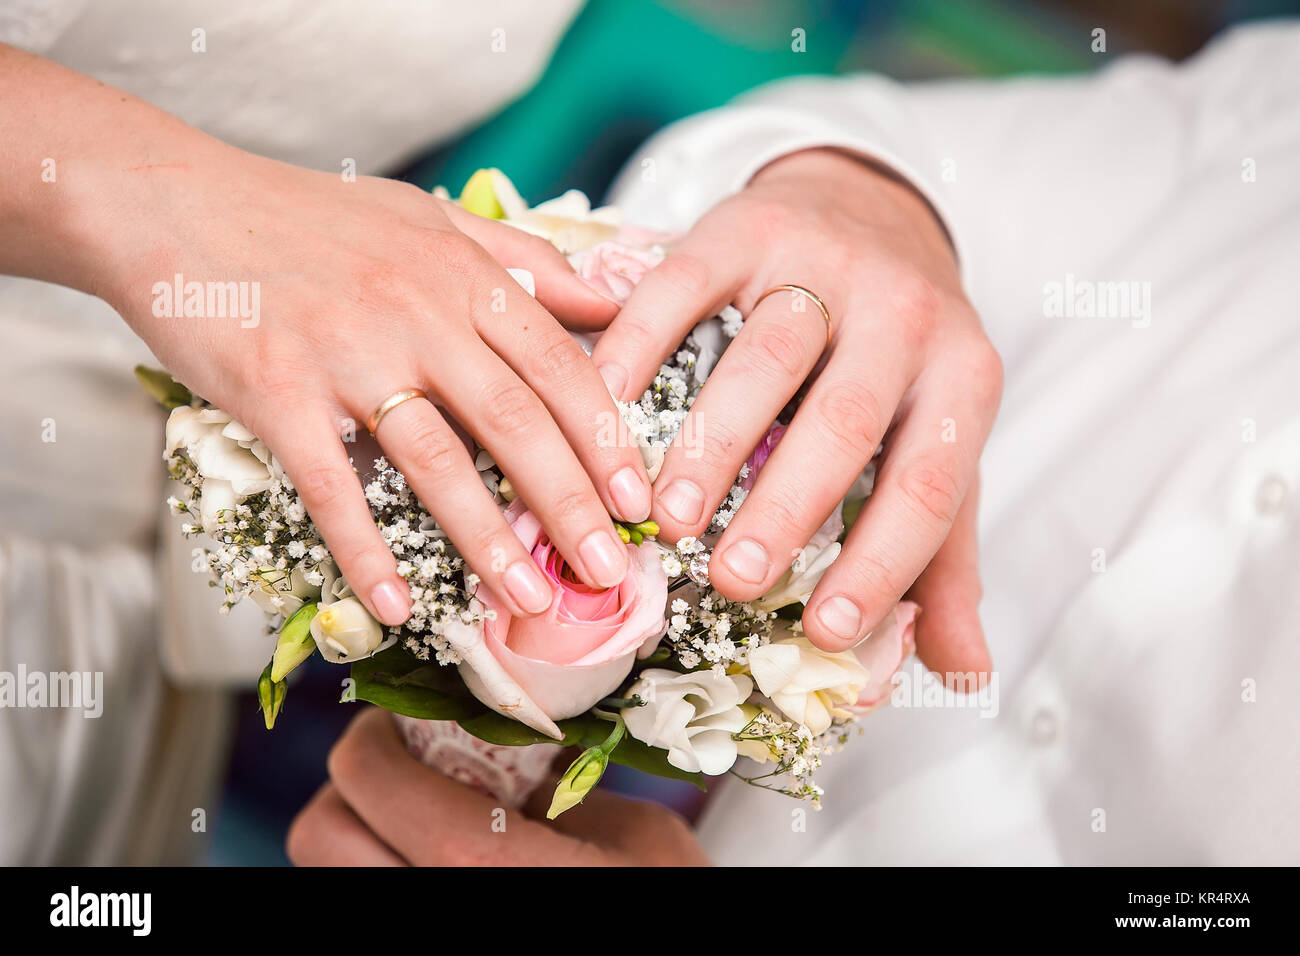 Hands of the groom and the bride with wedding rings and a wedding ...